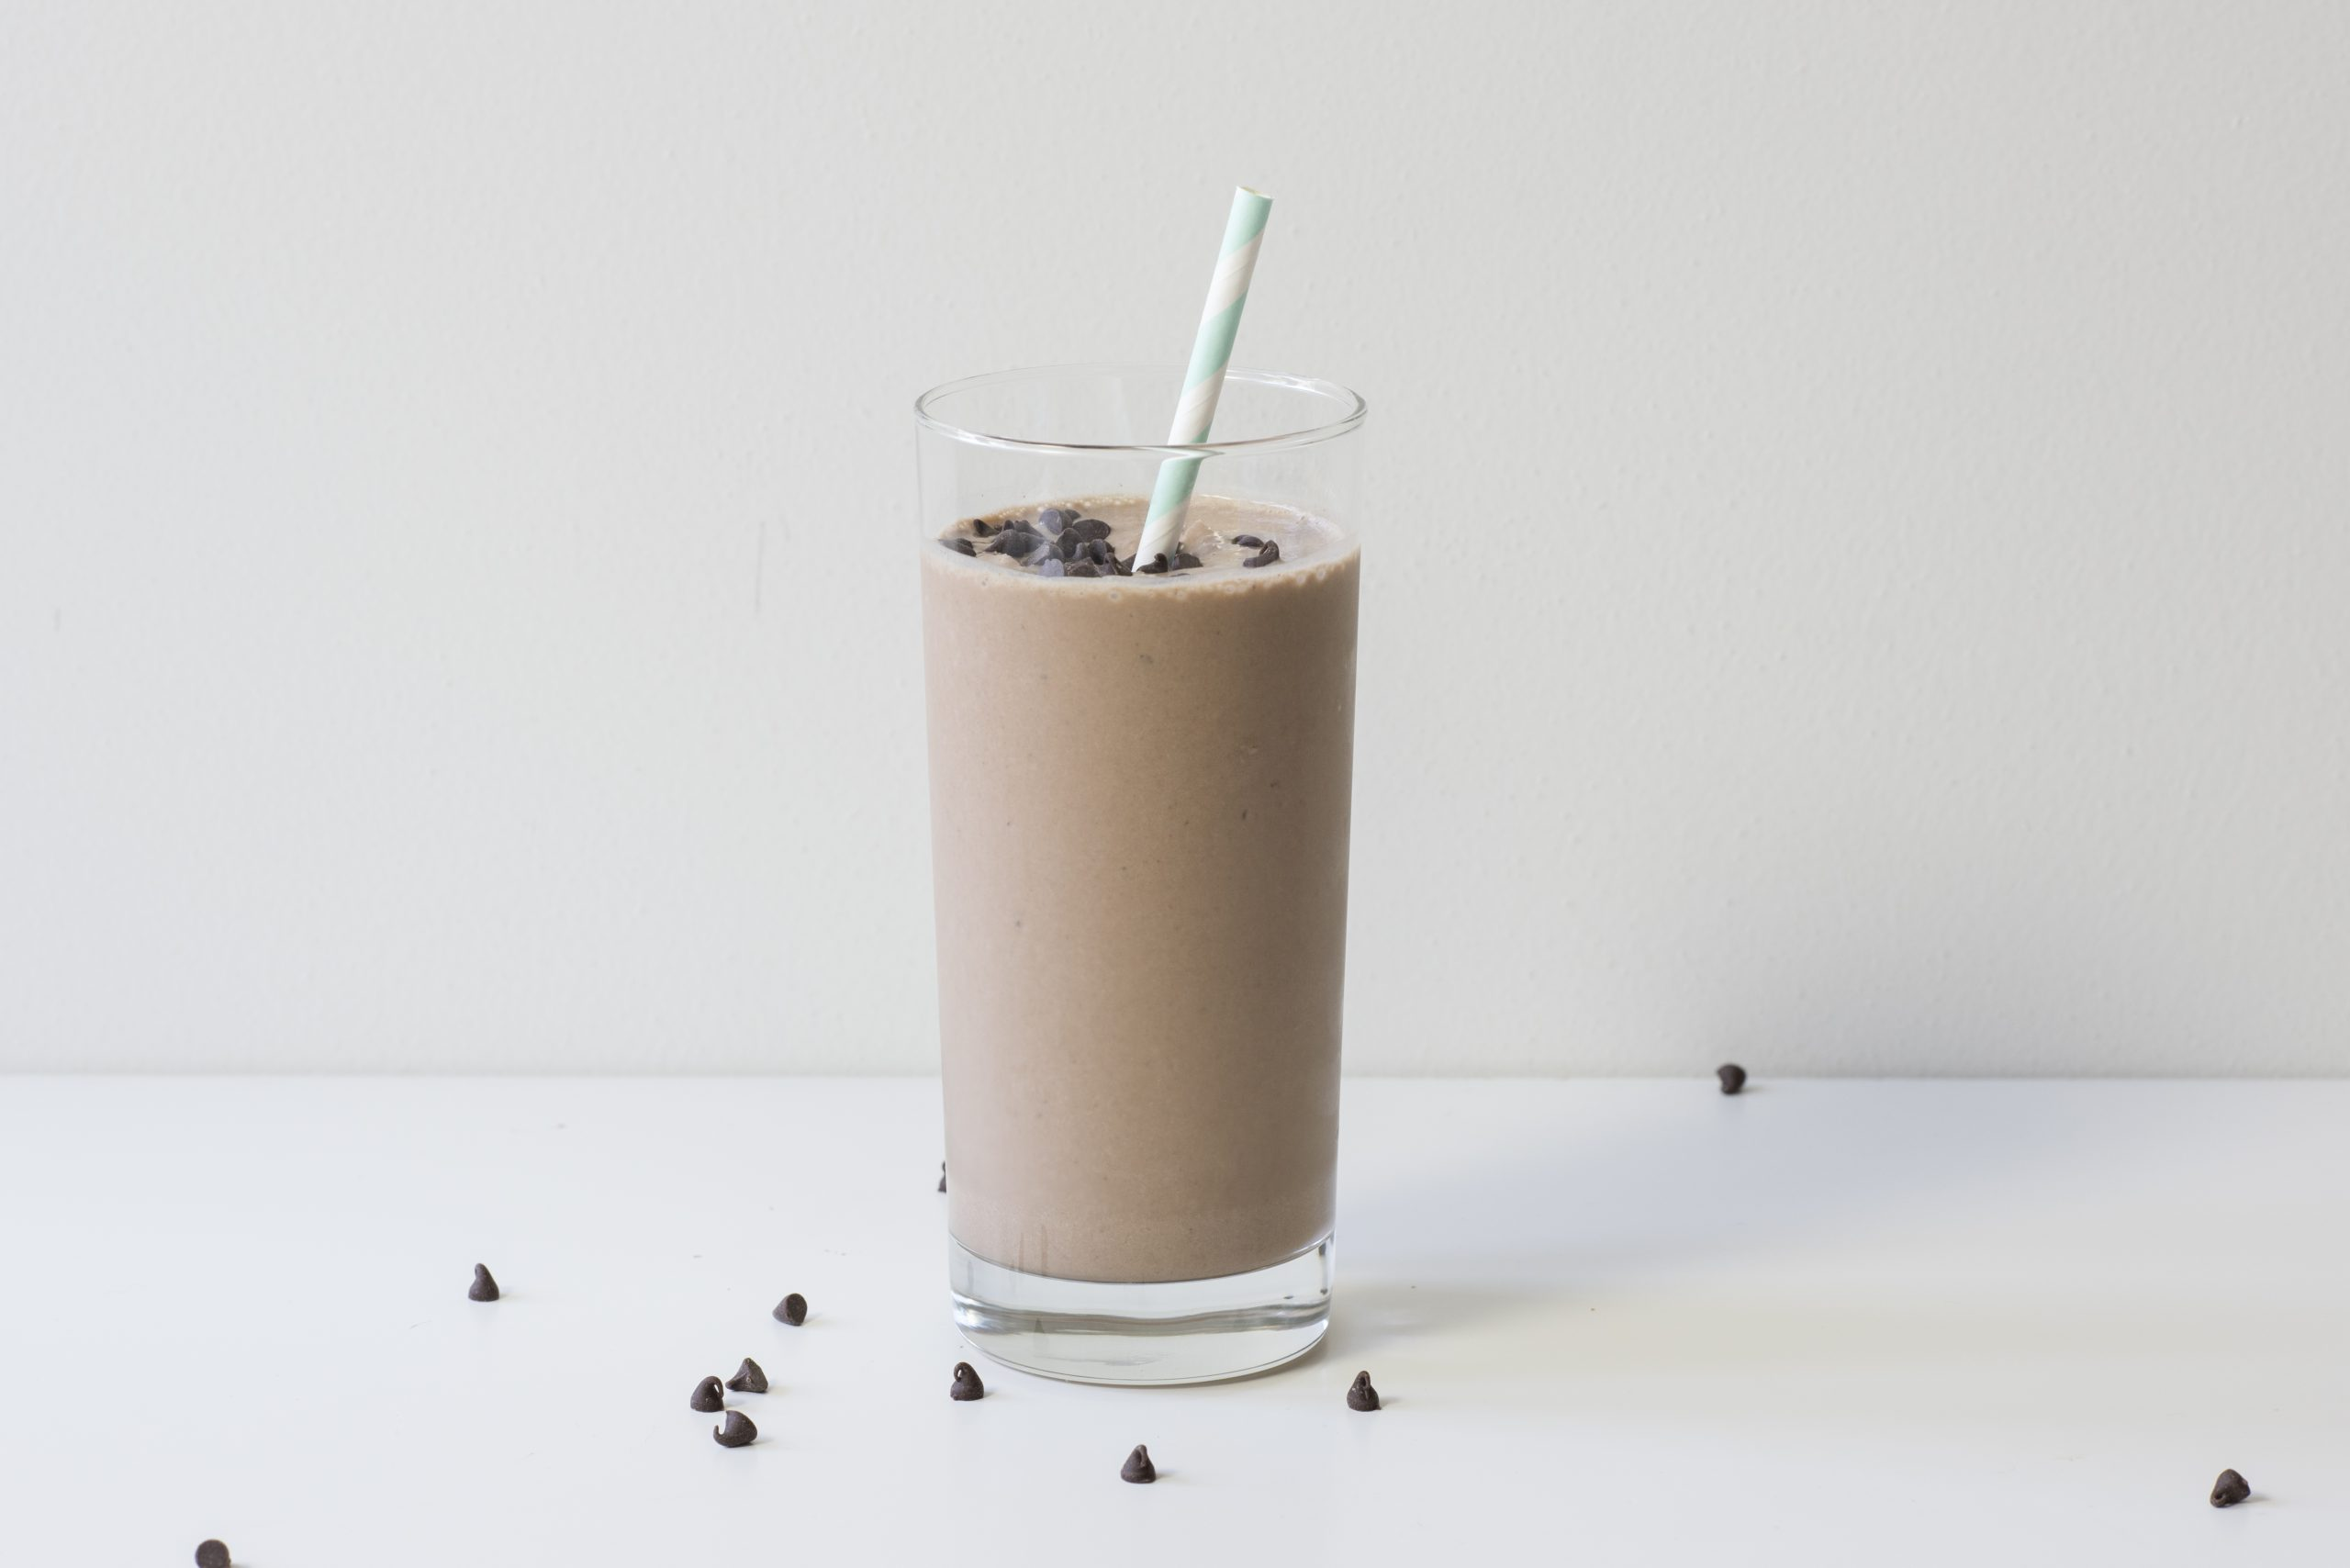 Smoothie made from Roasted Chickpea Powder